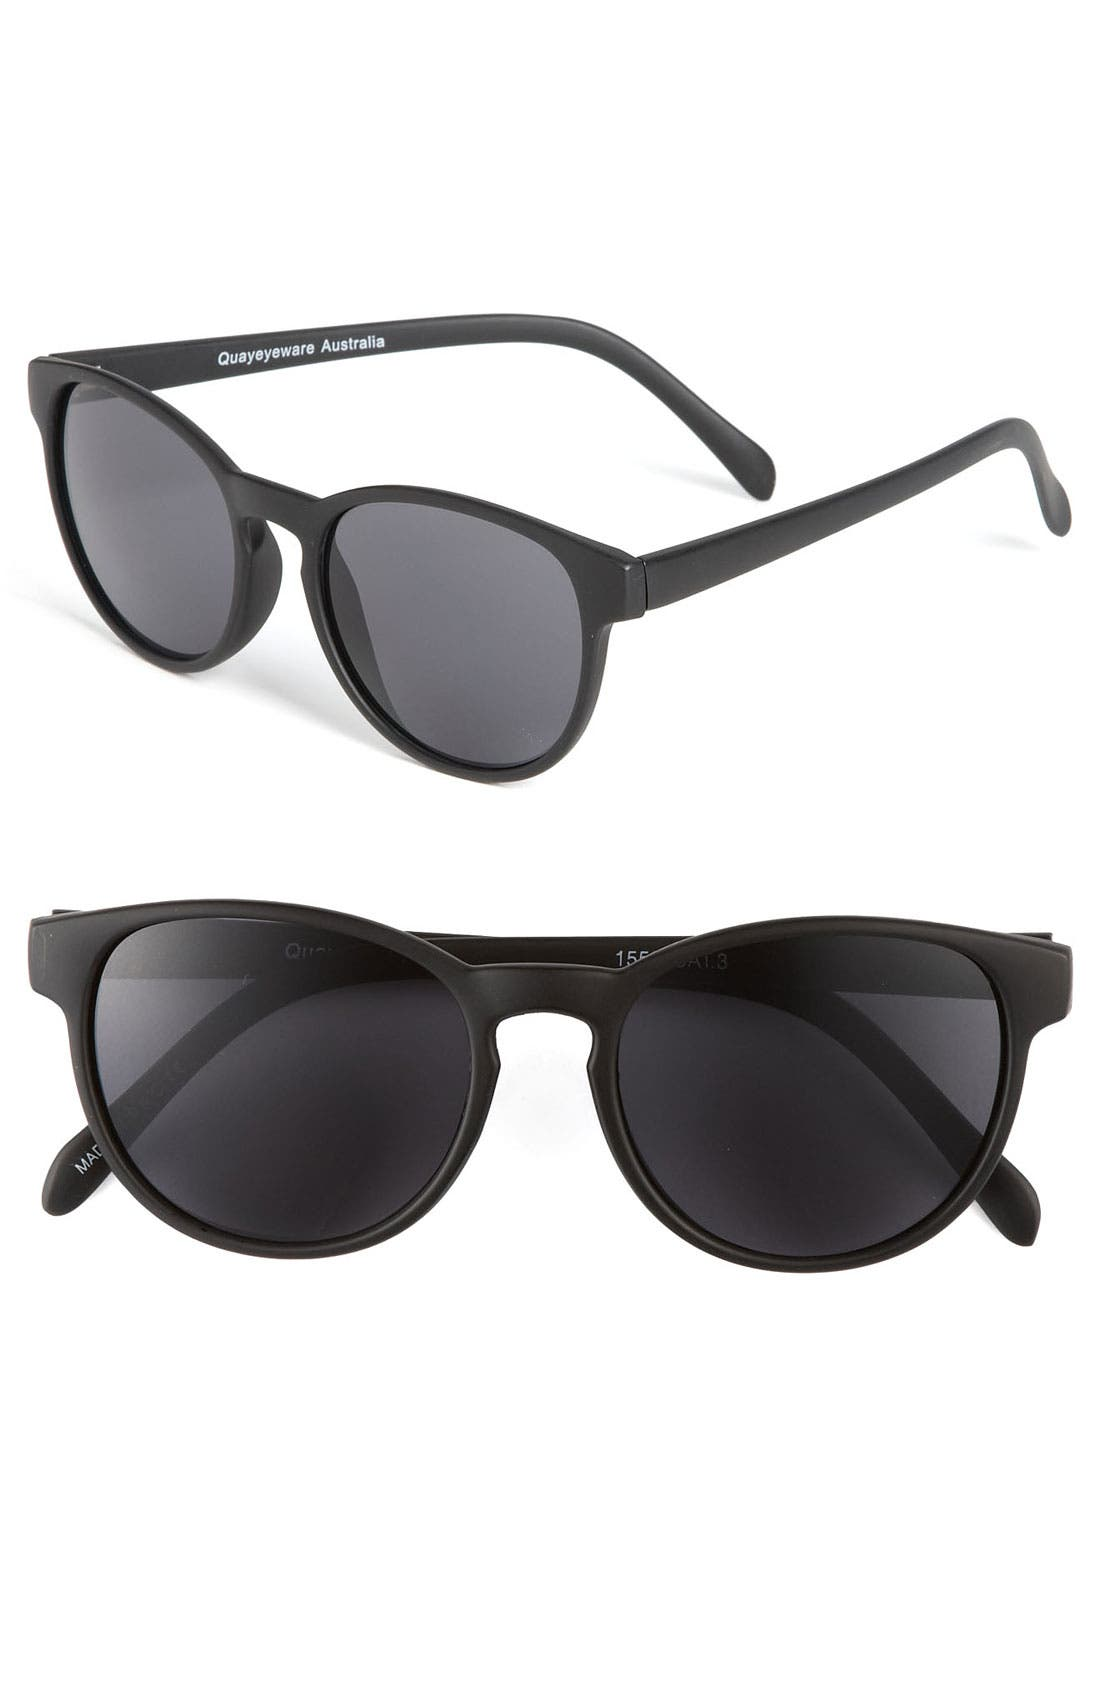 Main Image - Quay Oversized Sunglasses